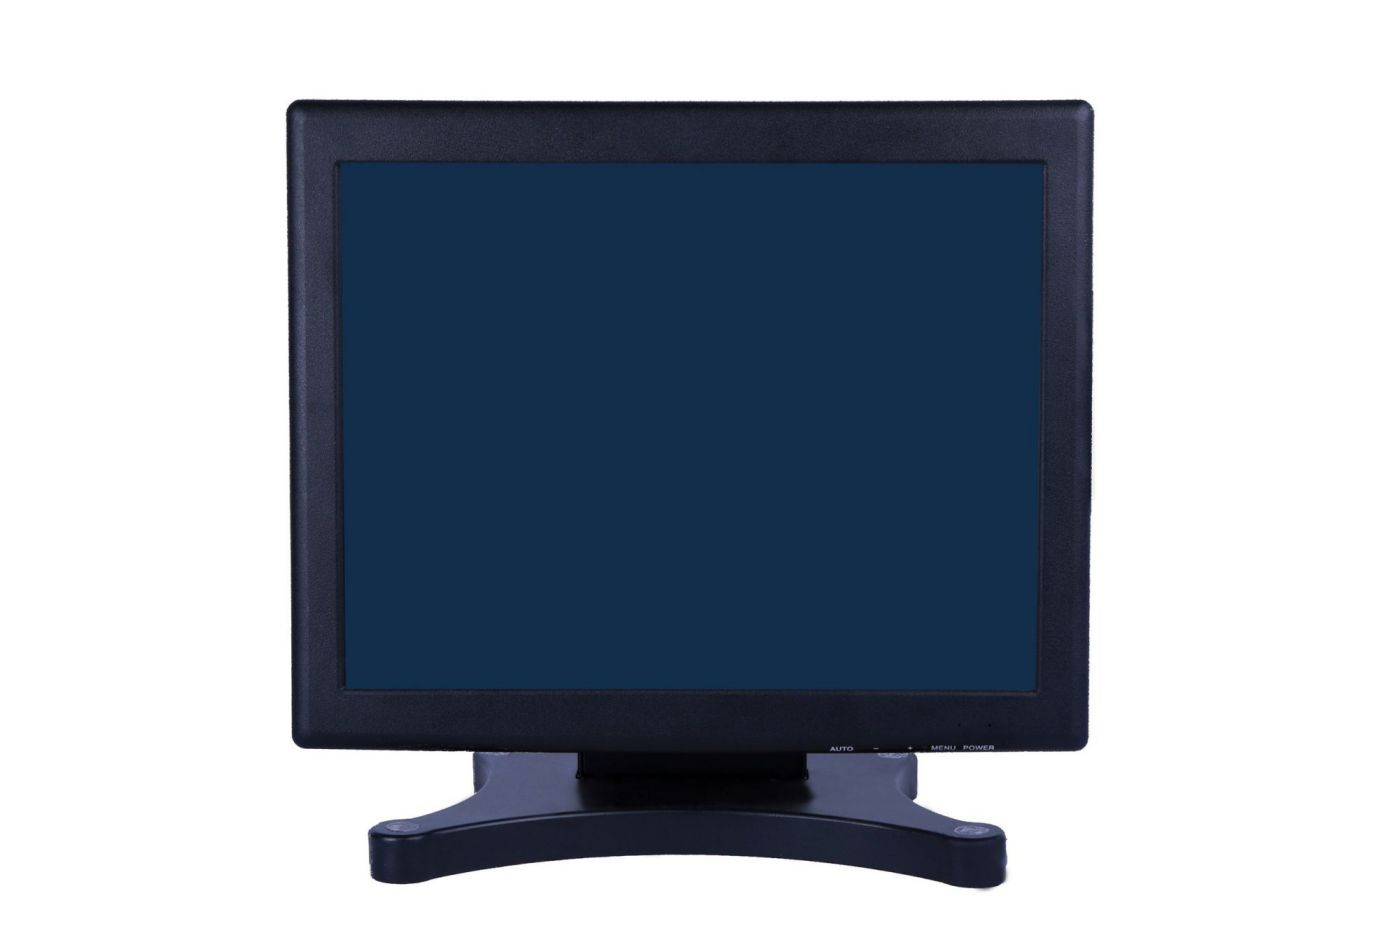 MONITOR TACTIL 17 BLUEBEE TM 217 NEGRO USB